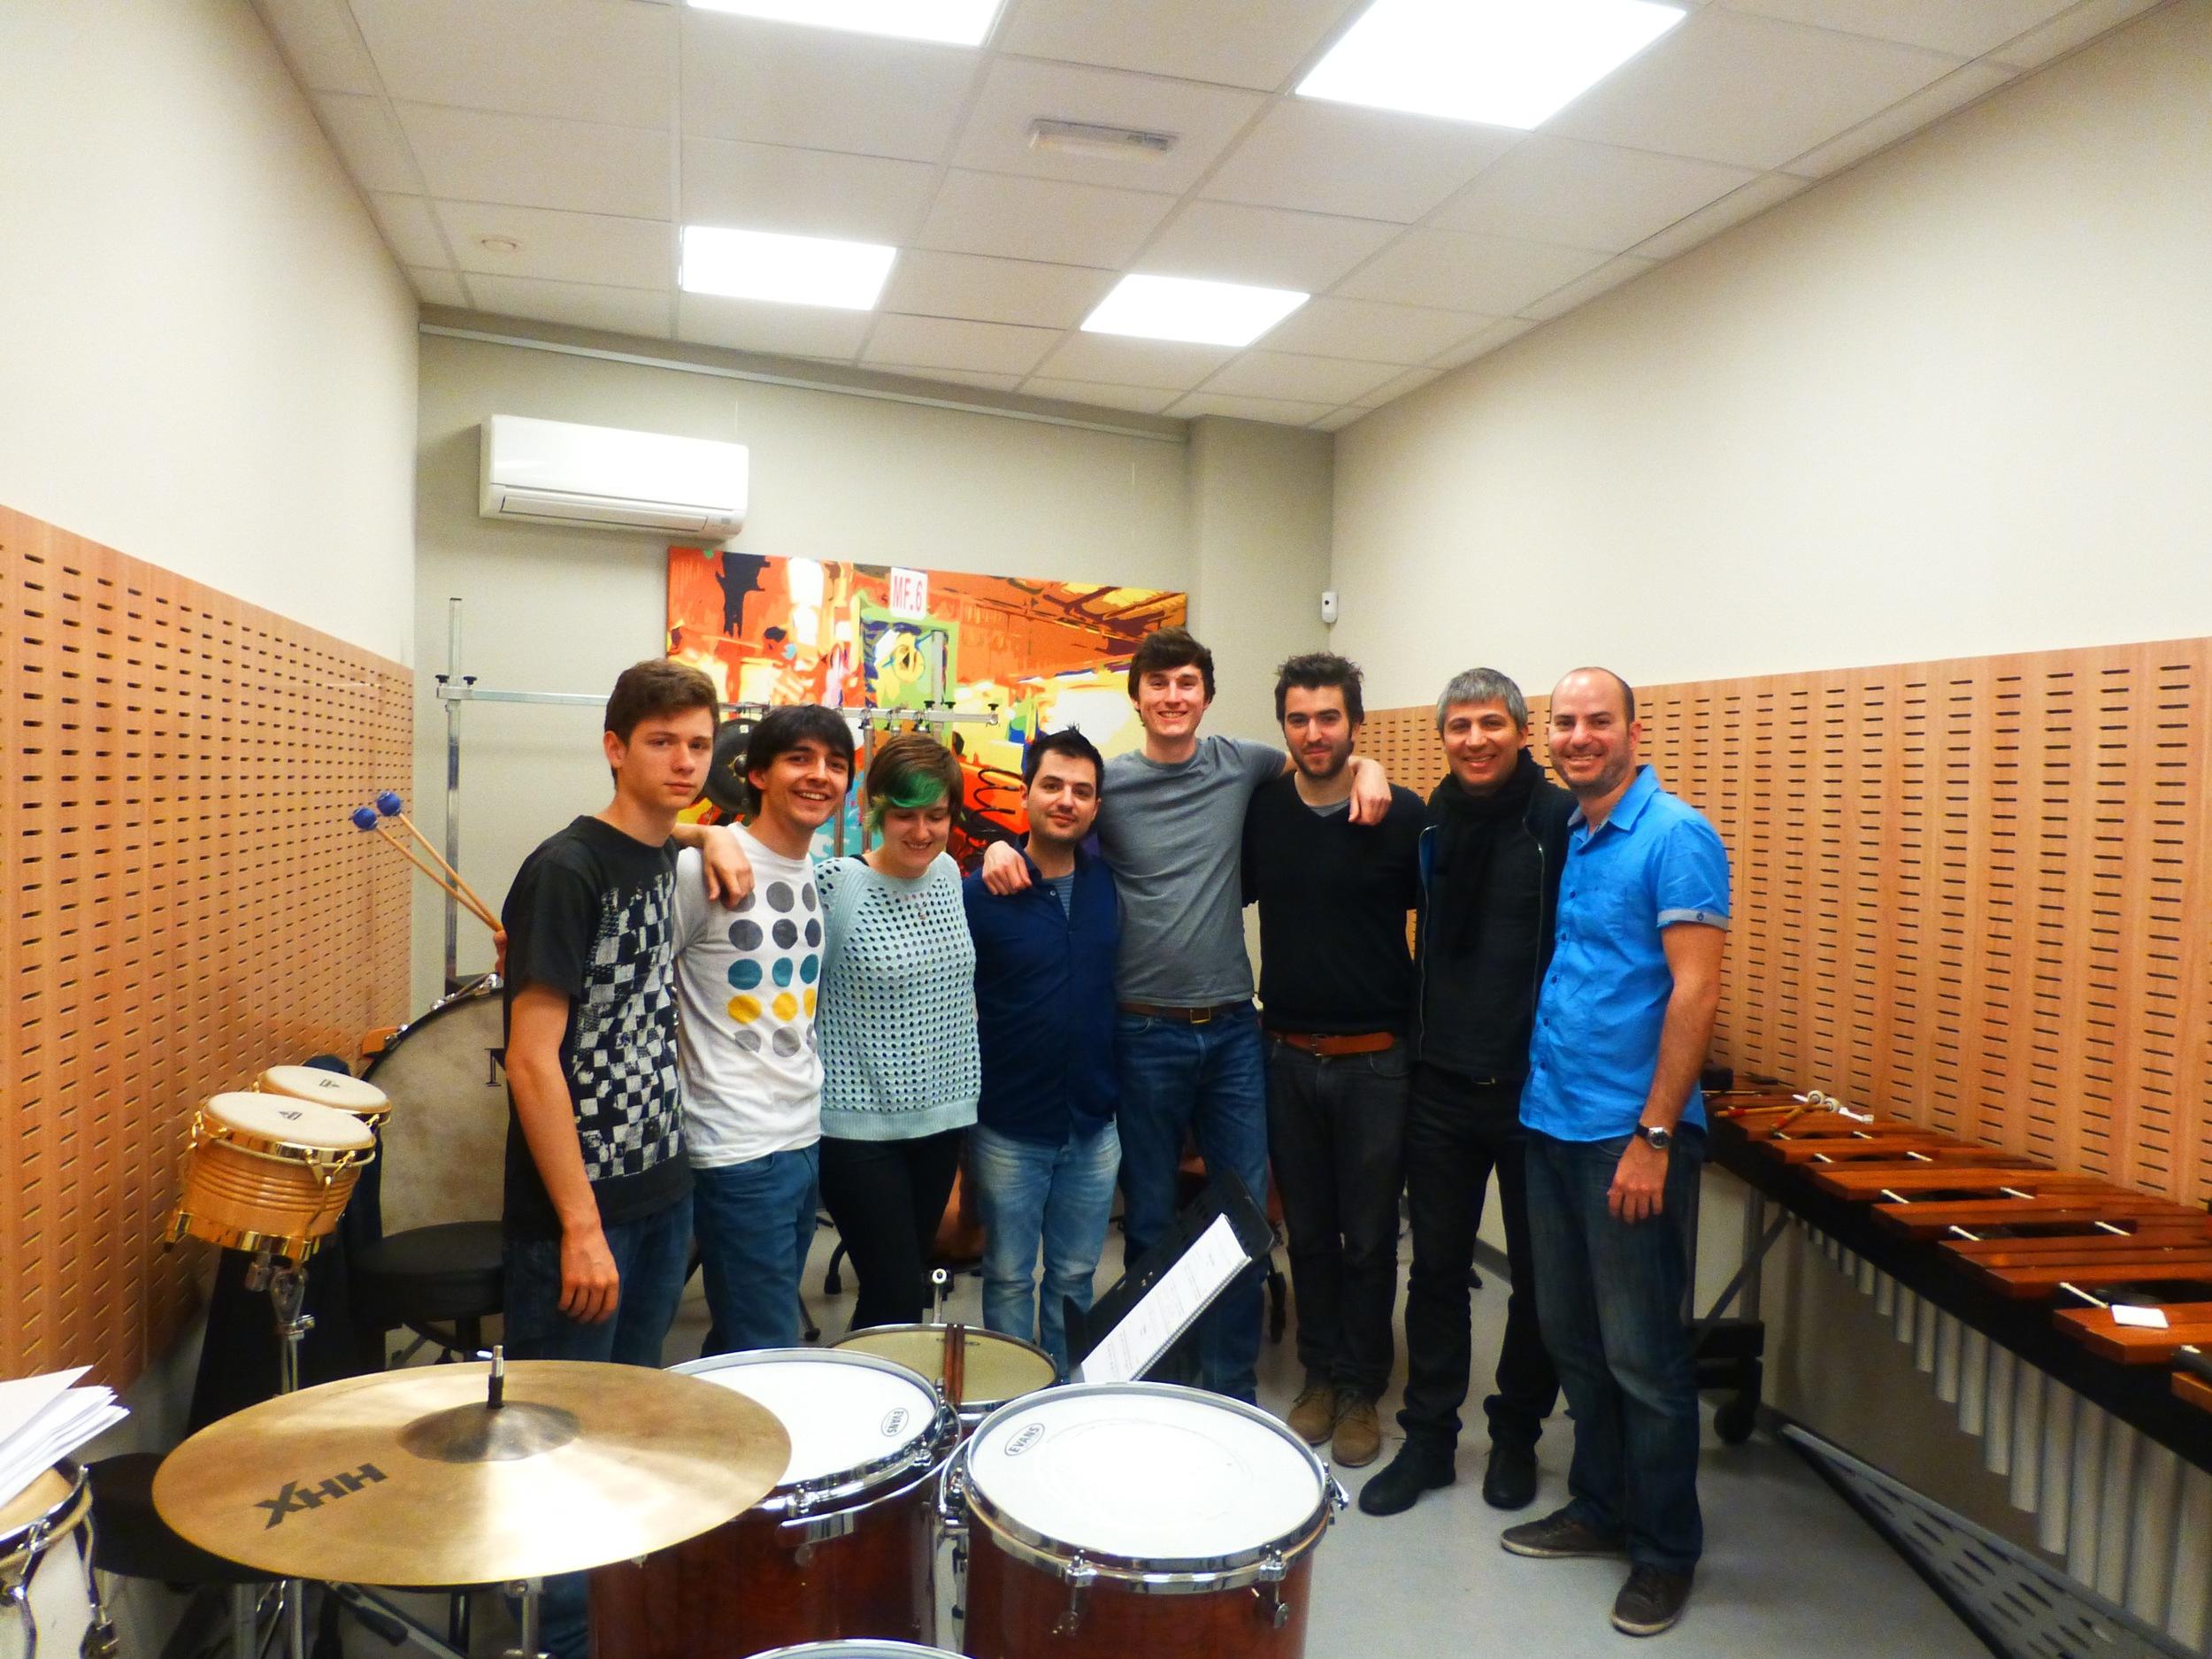 With the percussion students of the Katerina Gurska School of Music in Madrid